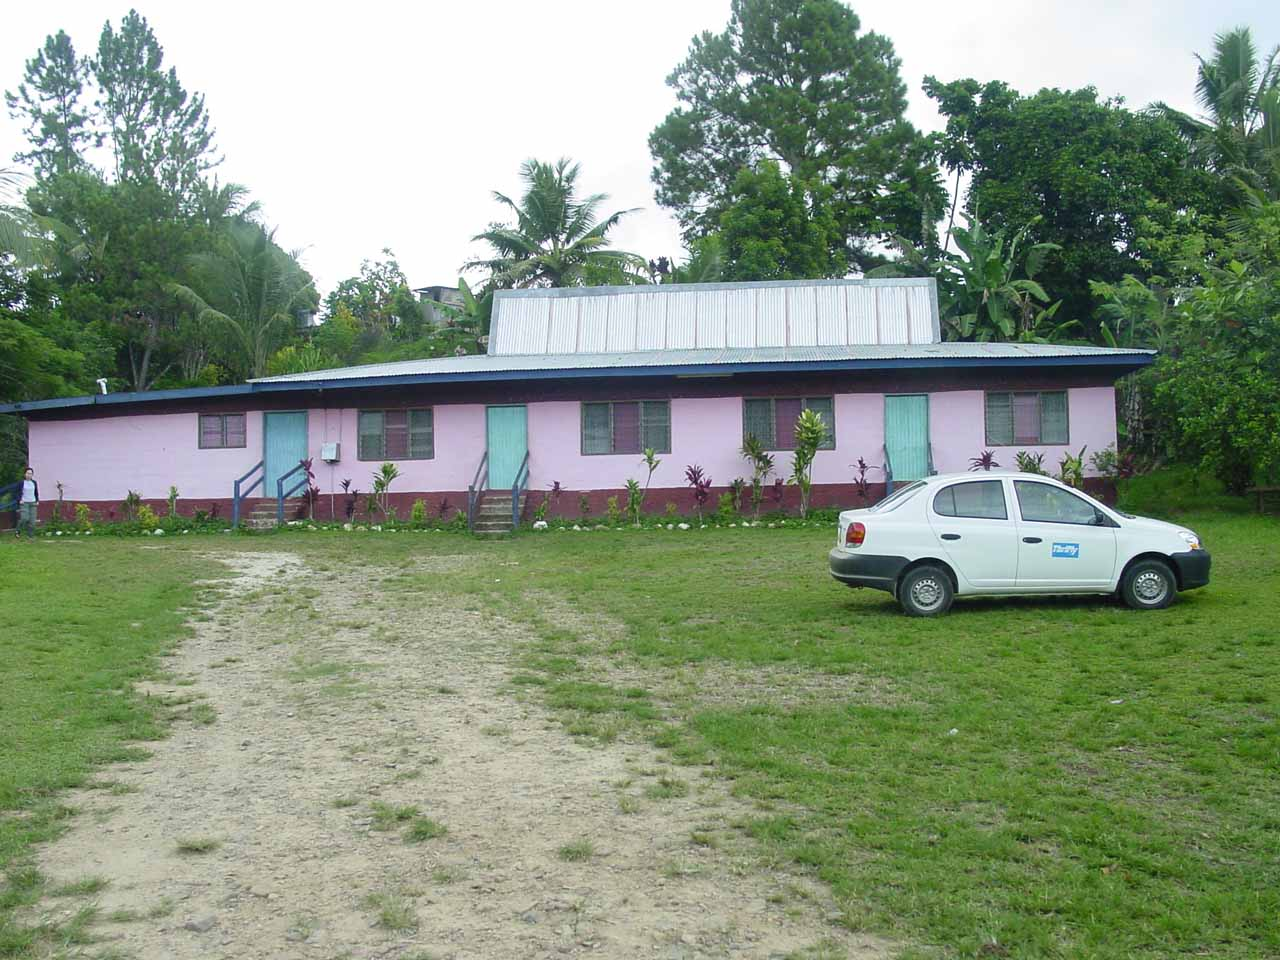 The pink house and car park